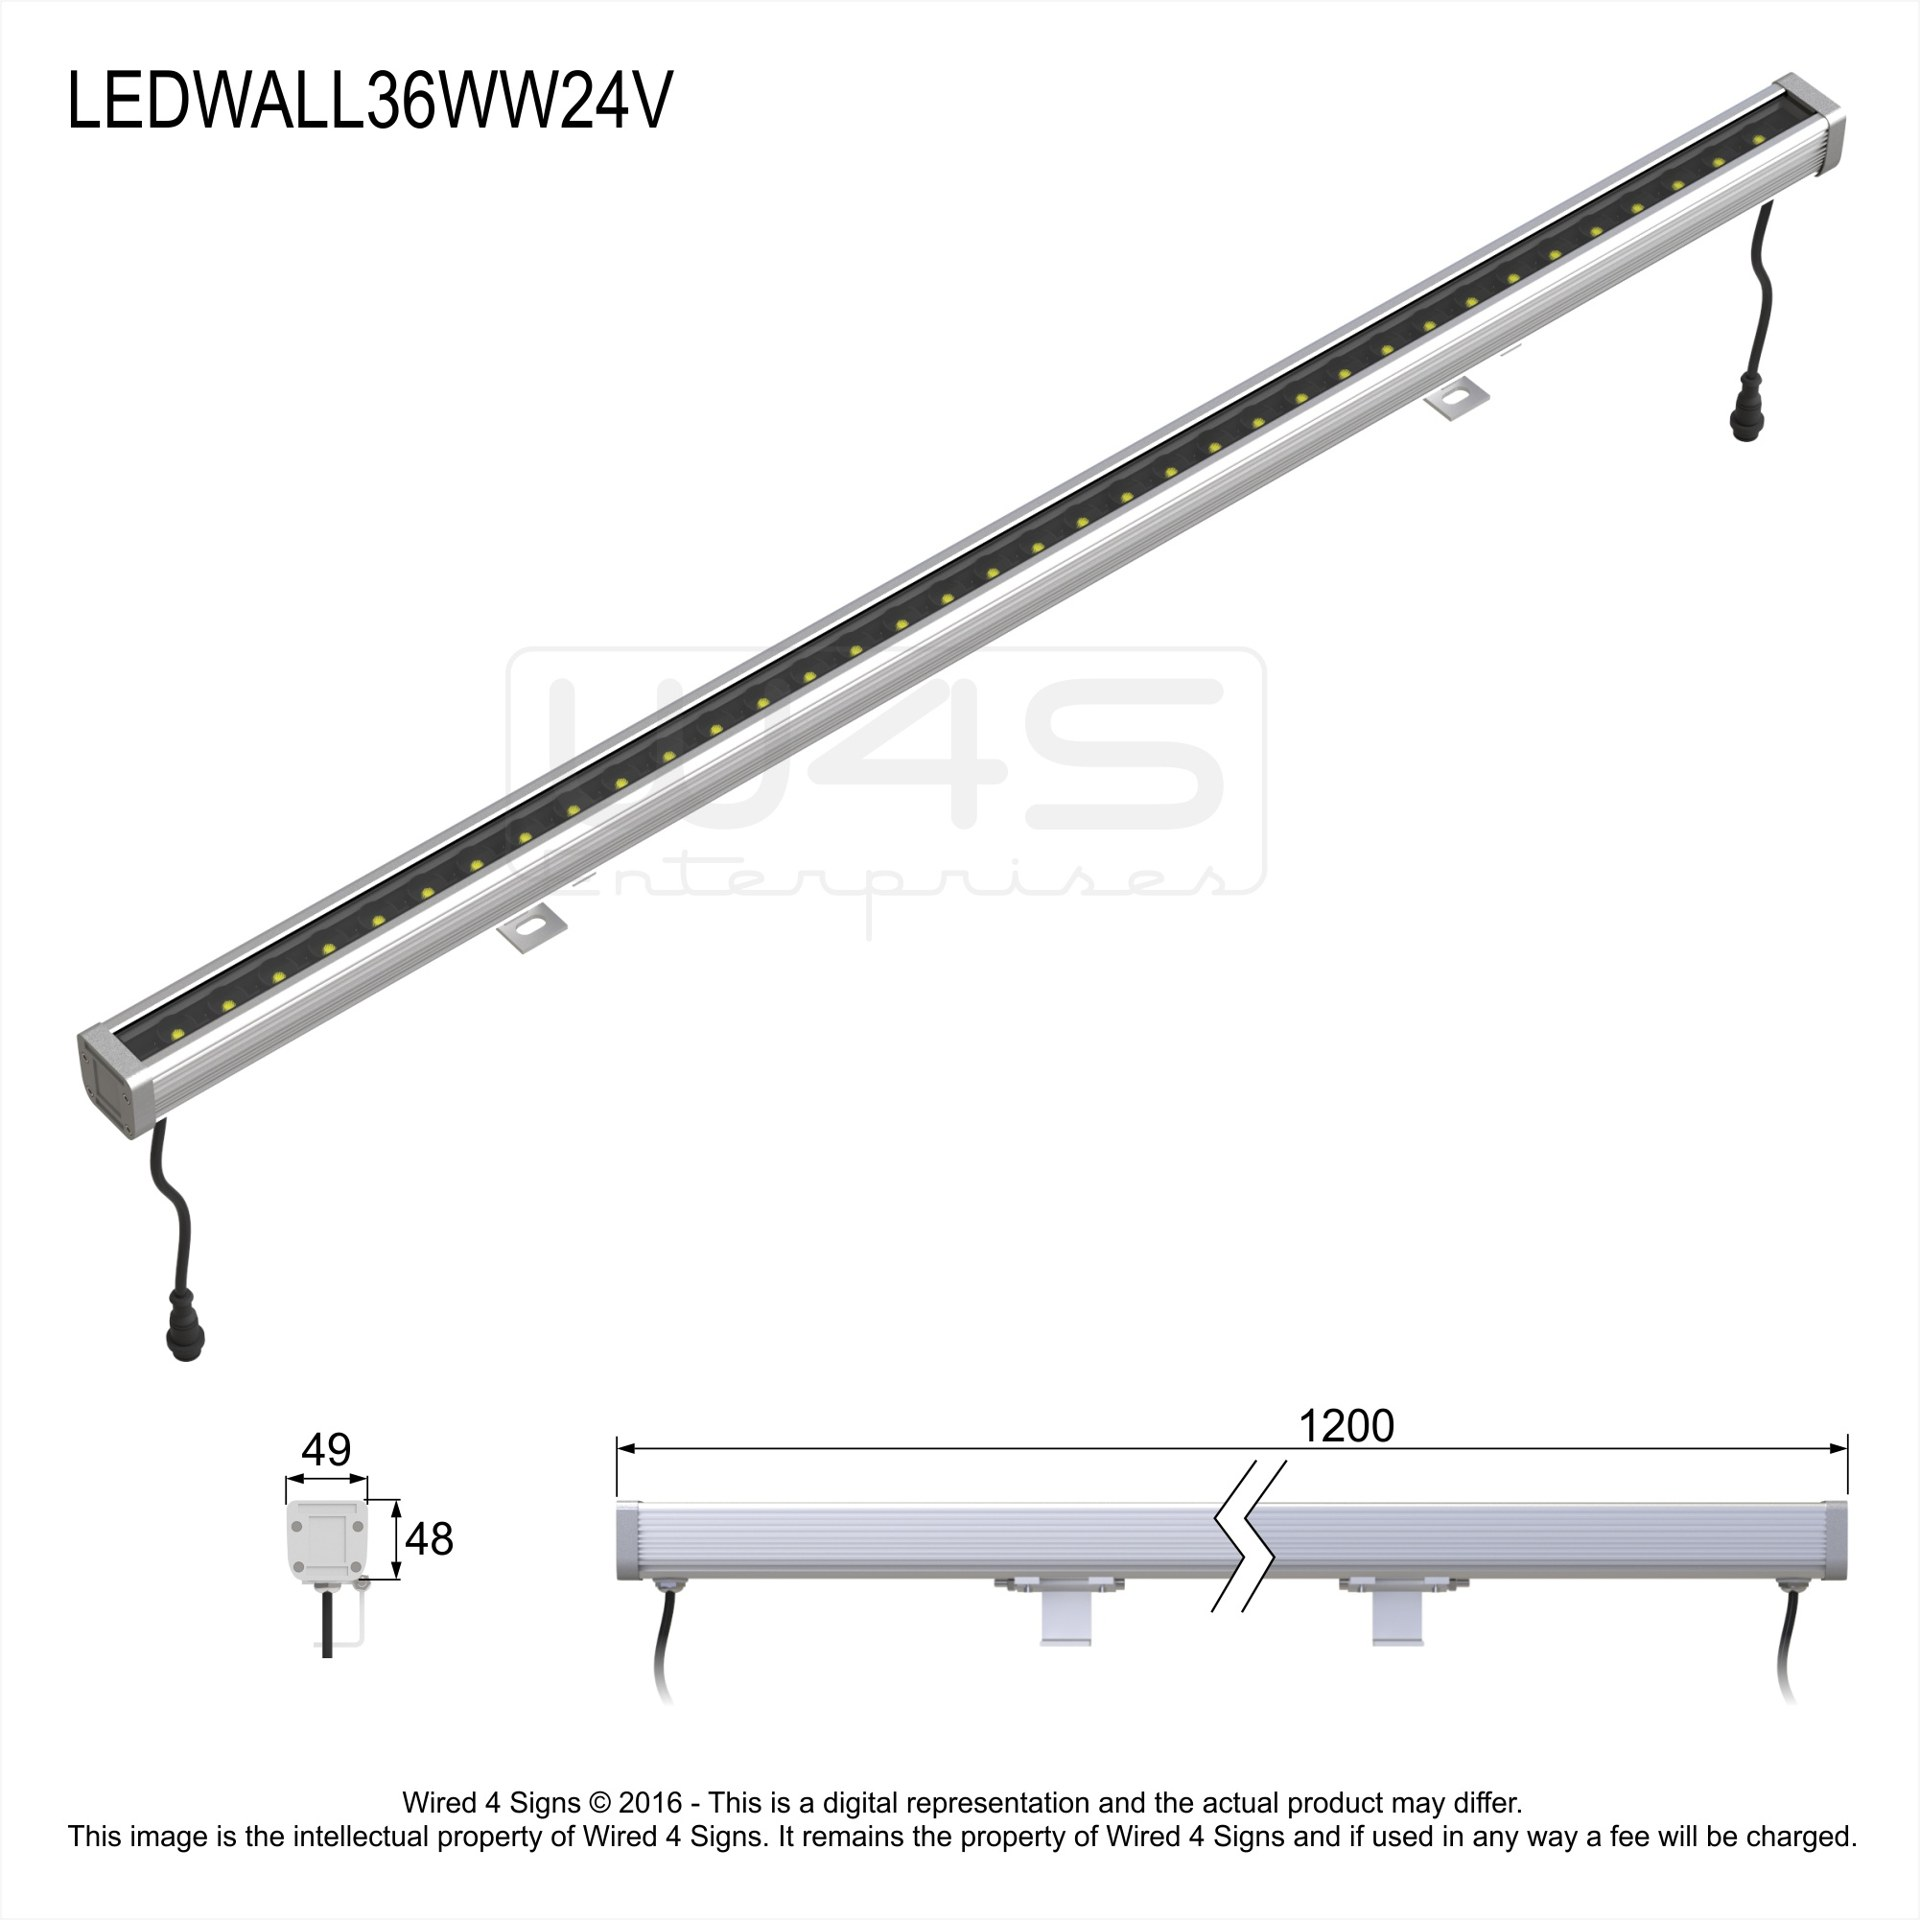 LED Channel and Diffuser Port Elizabeth